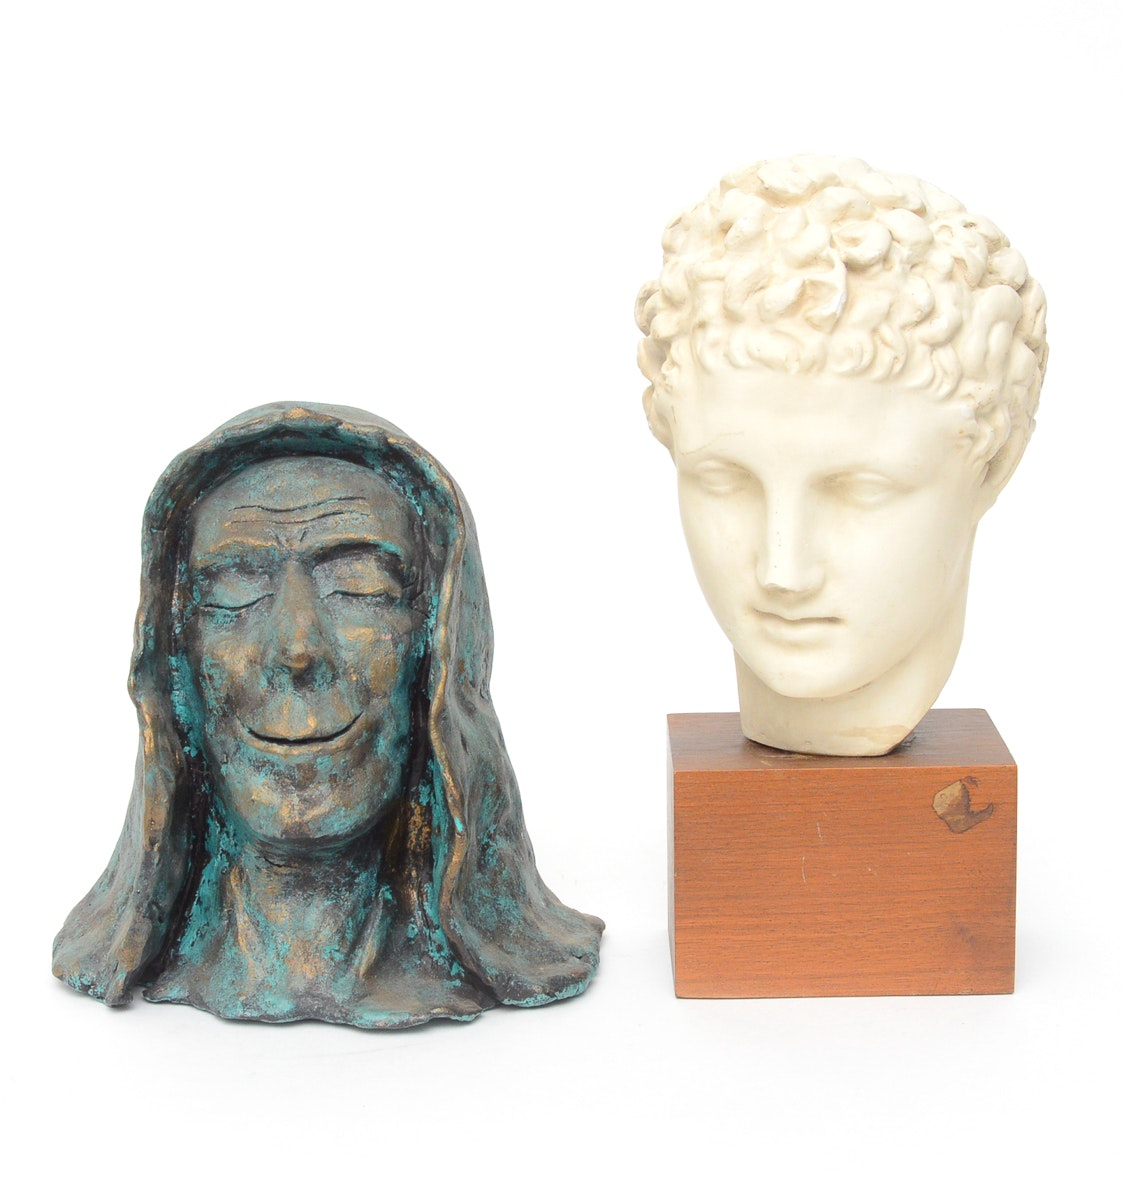 Terracotta Bust and Plaster Bust